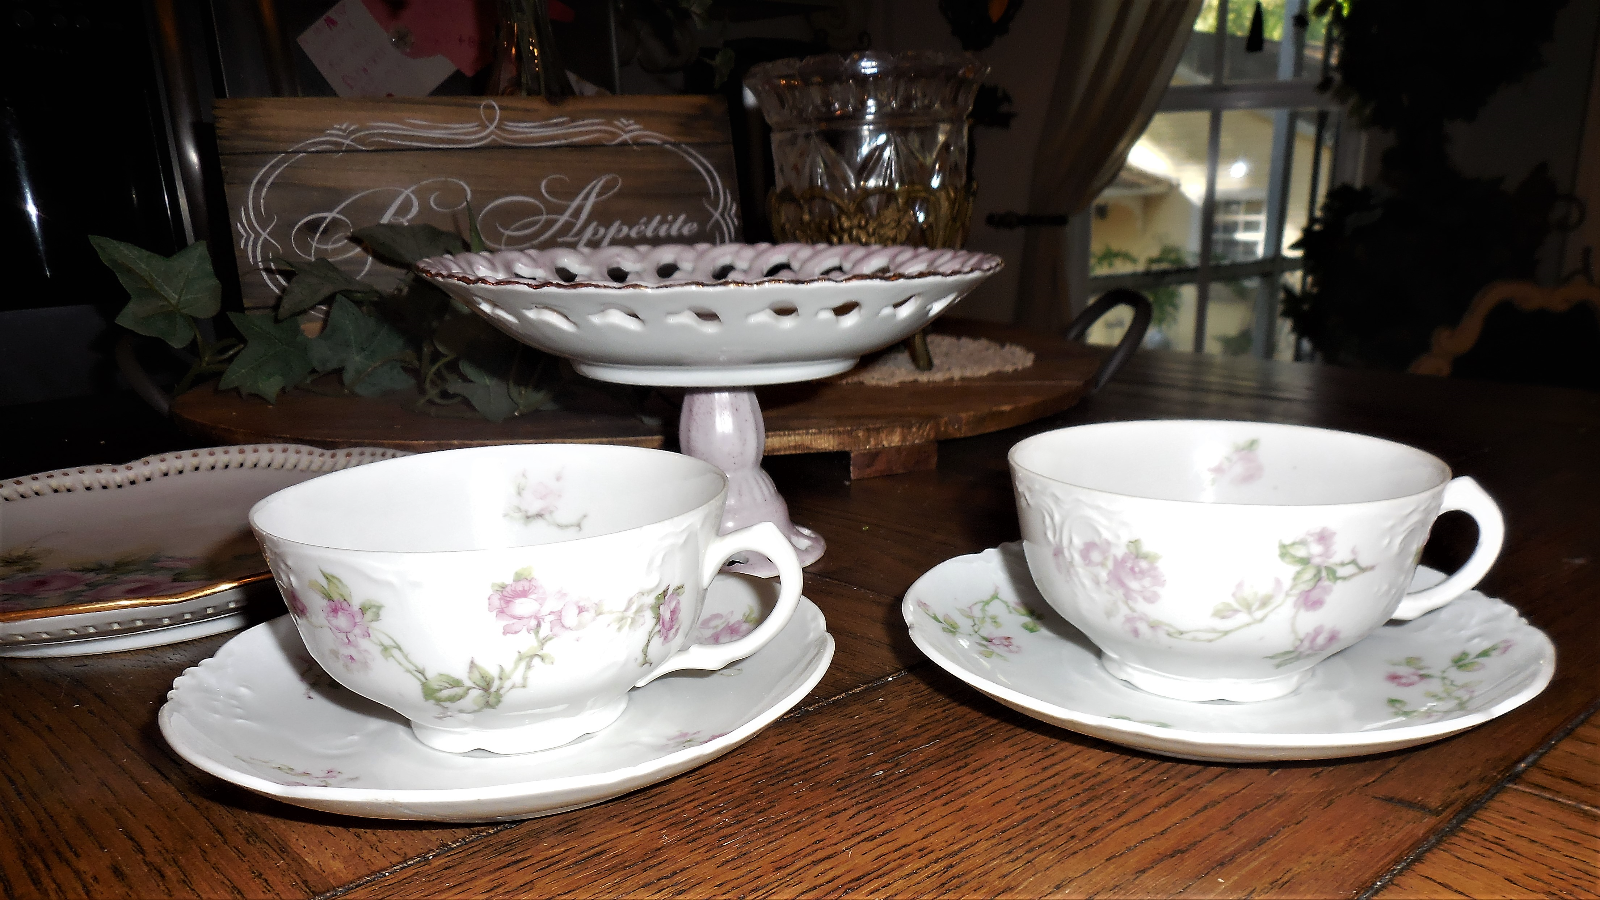 bc96c4766f Habsburg China Mixed 6 Piece Tea Cup & Saucer Set- Cake & Display Plate  FLOWERS 3 3 of 12 ...